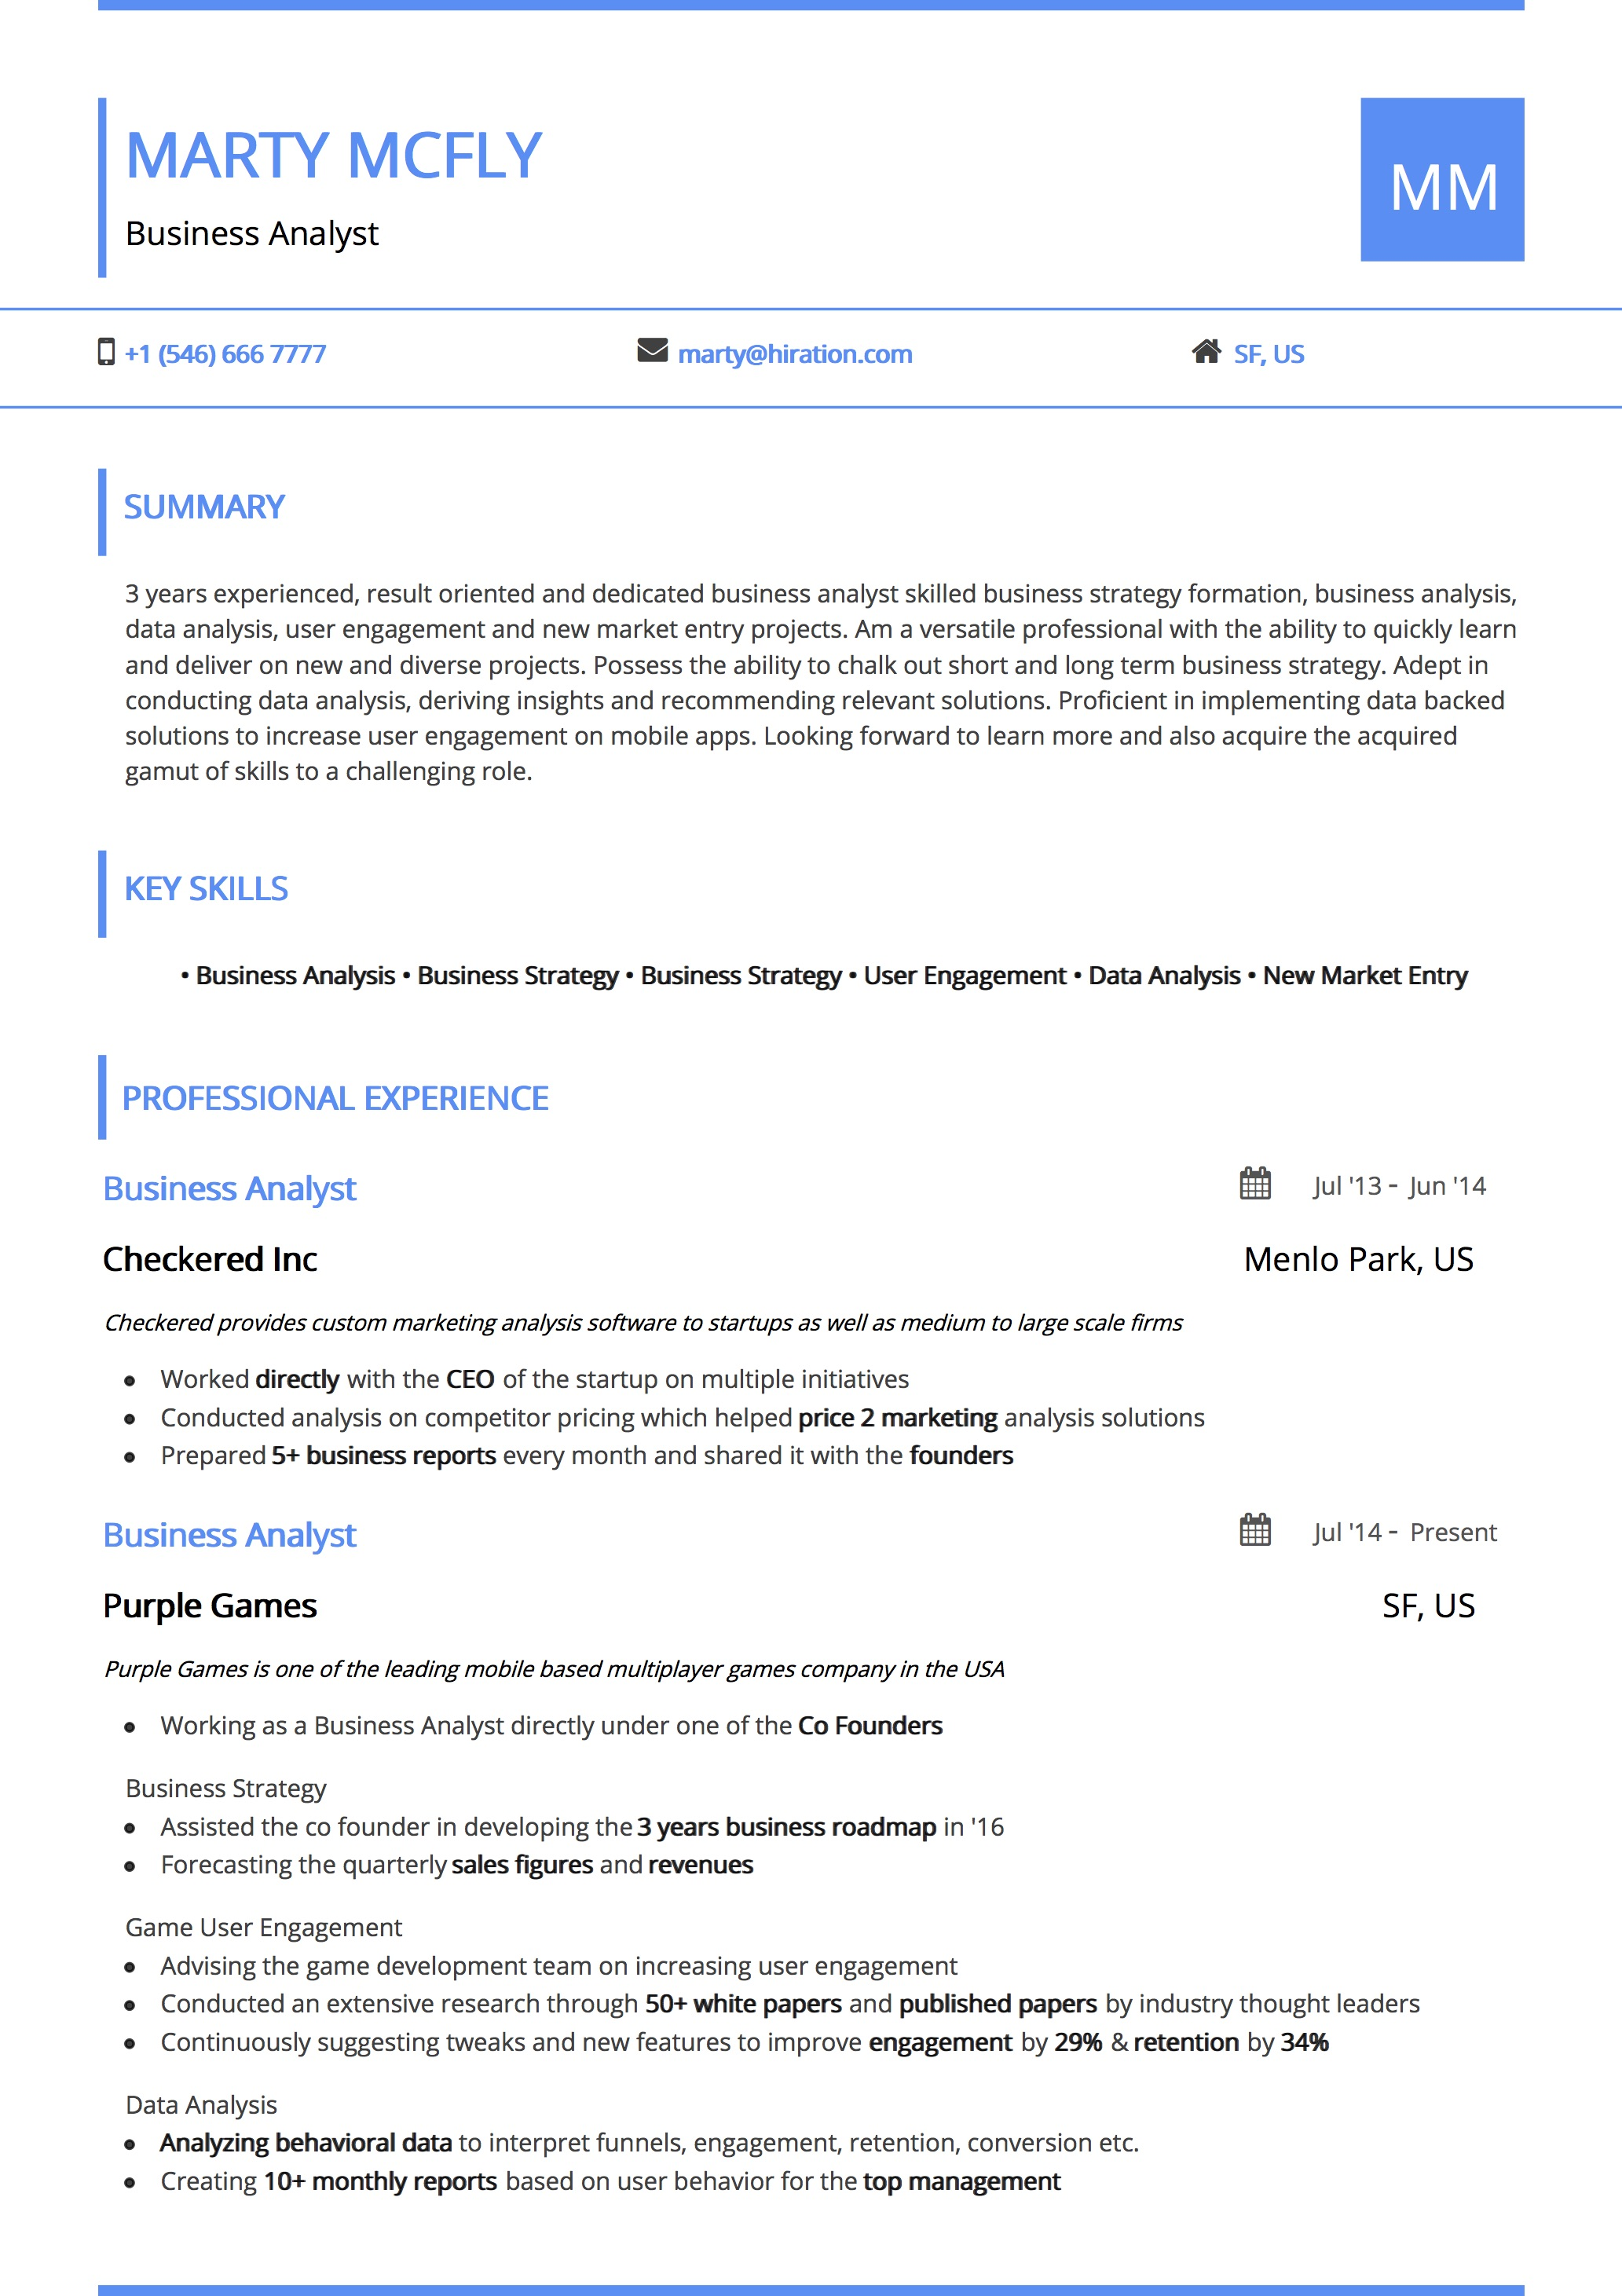 Resume Template: Material Color